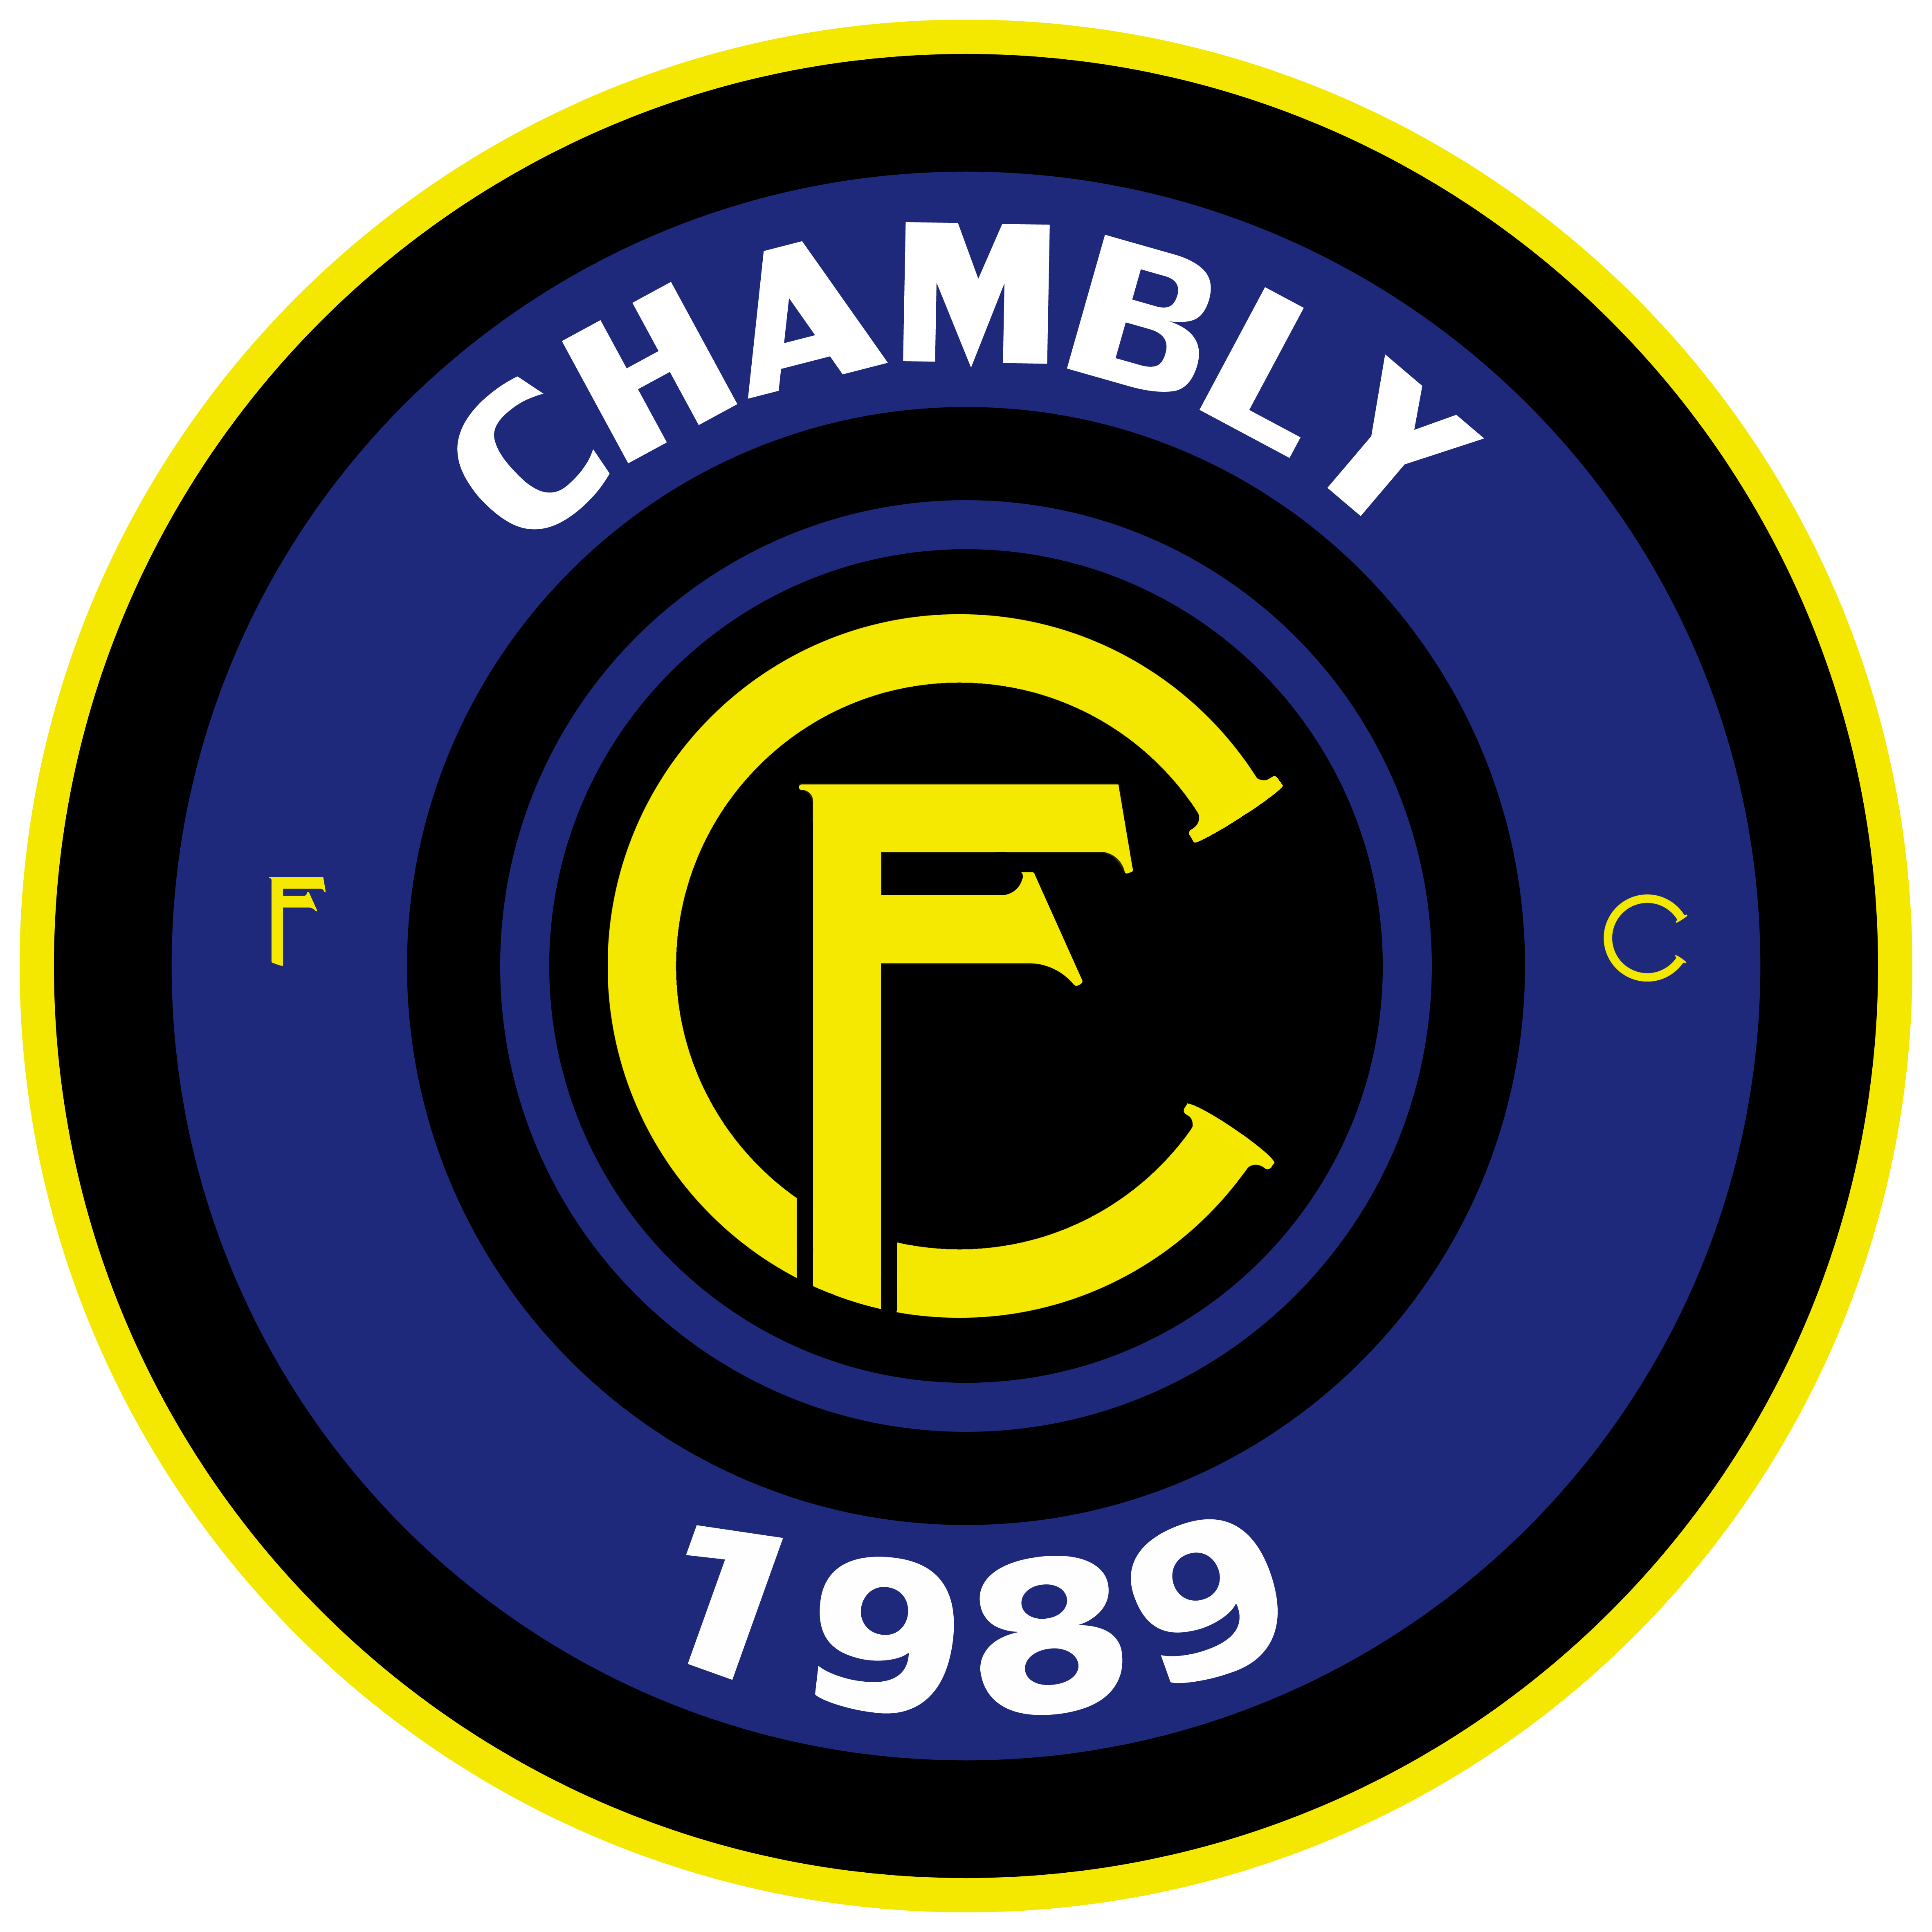 http://image.noelshack.com/fichiers/2012/13/1332802482-fc_chambly-9ede600b26.png